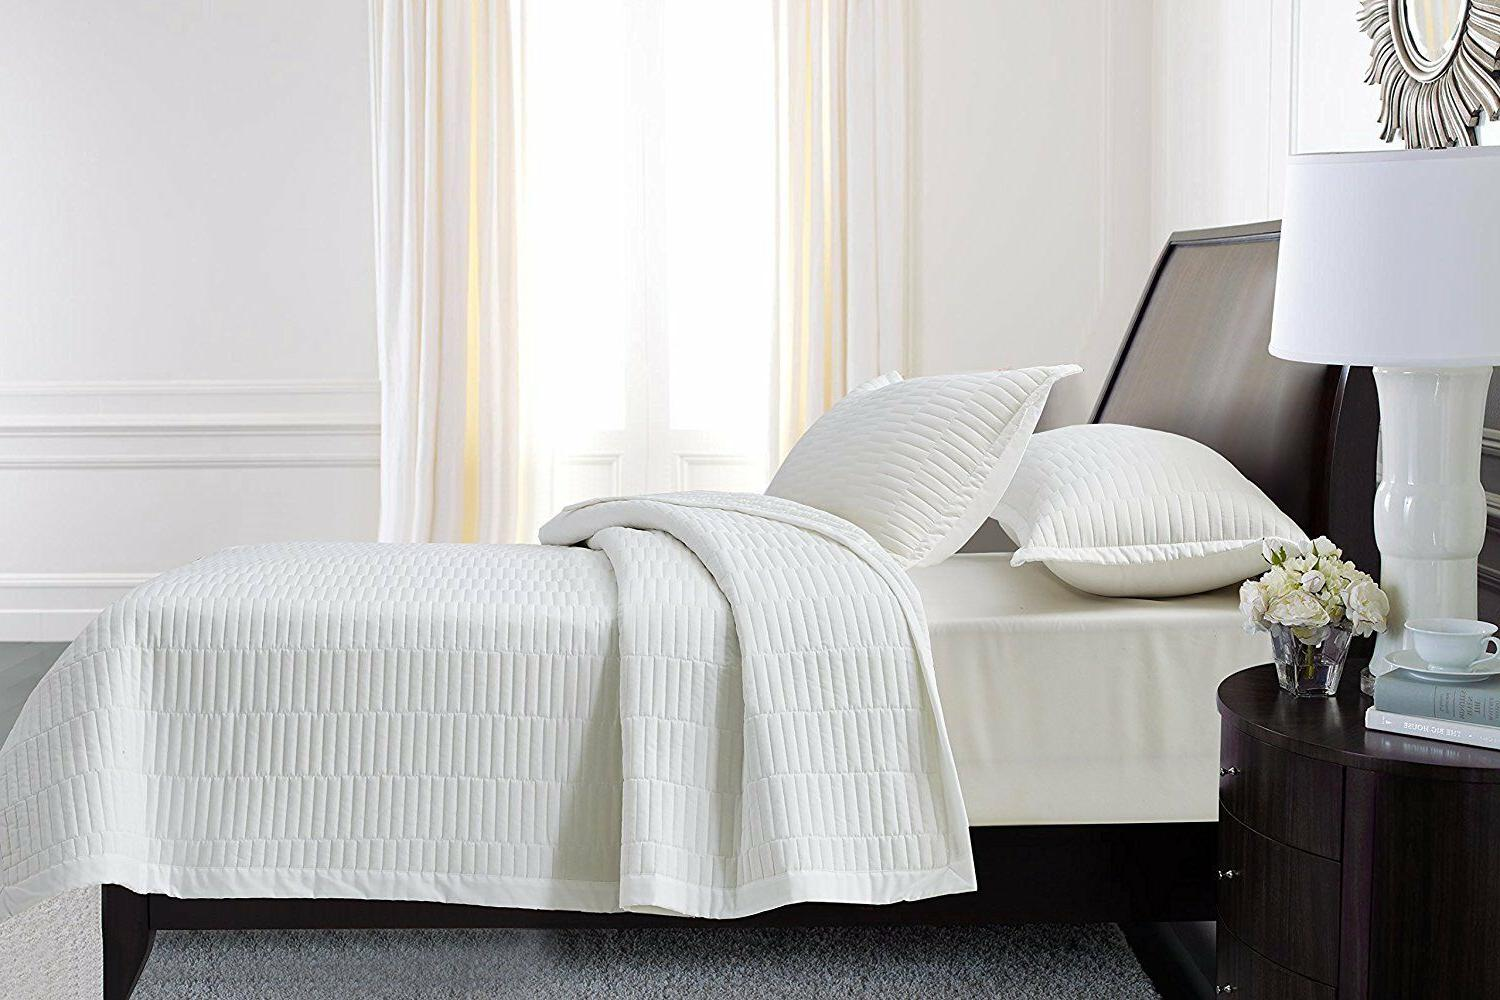 Fancy Linen 3pc Quilted Bedspread Embroidery Solid White All